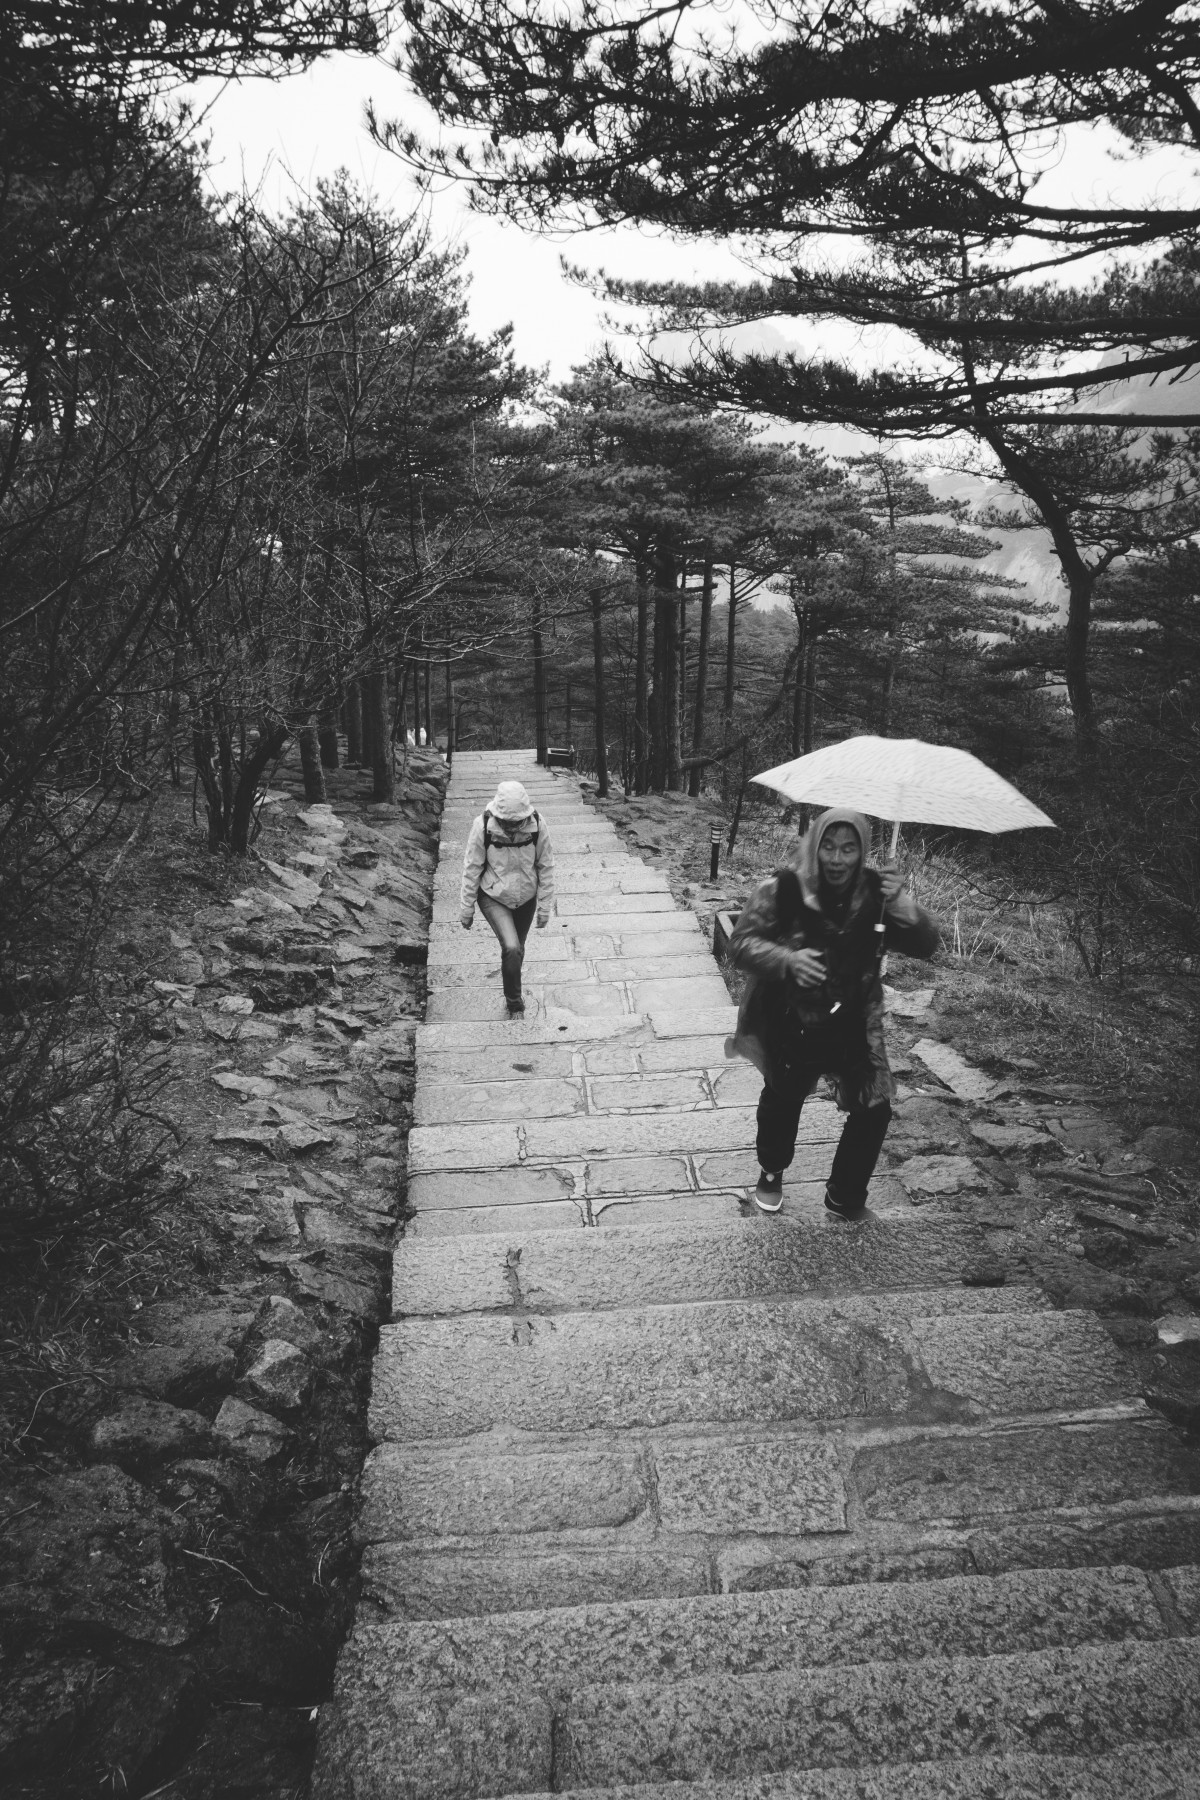 Free Images  person snow winter black and white rain